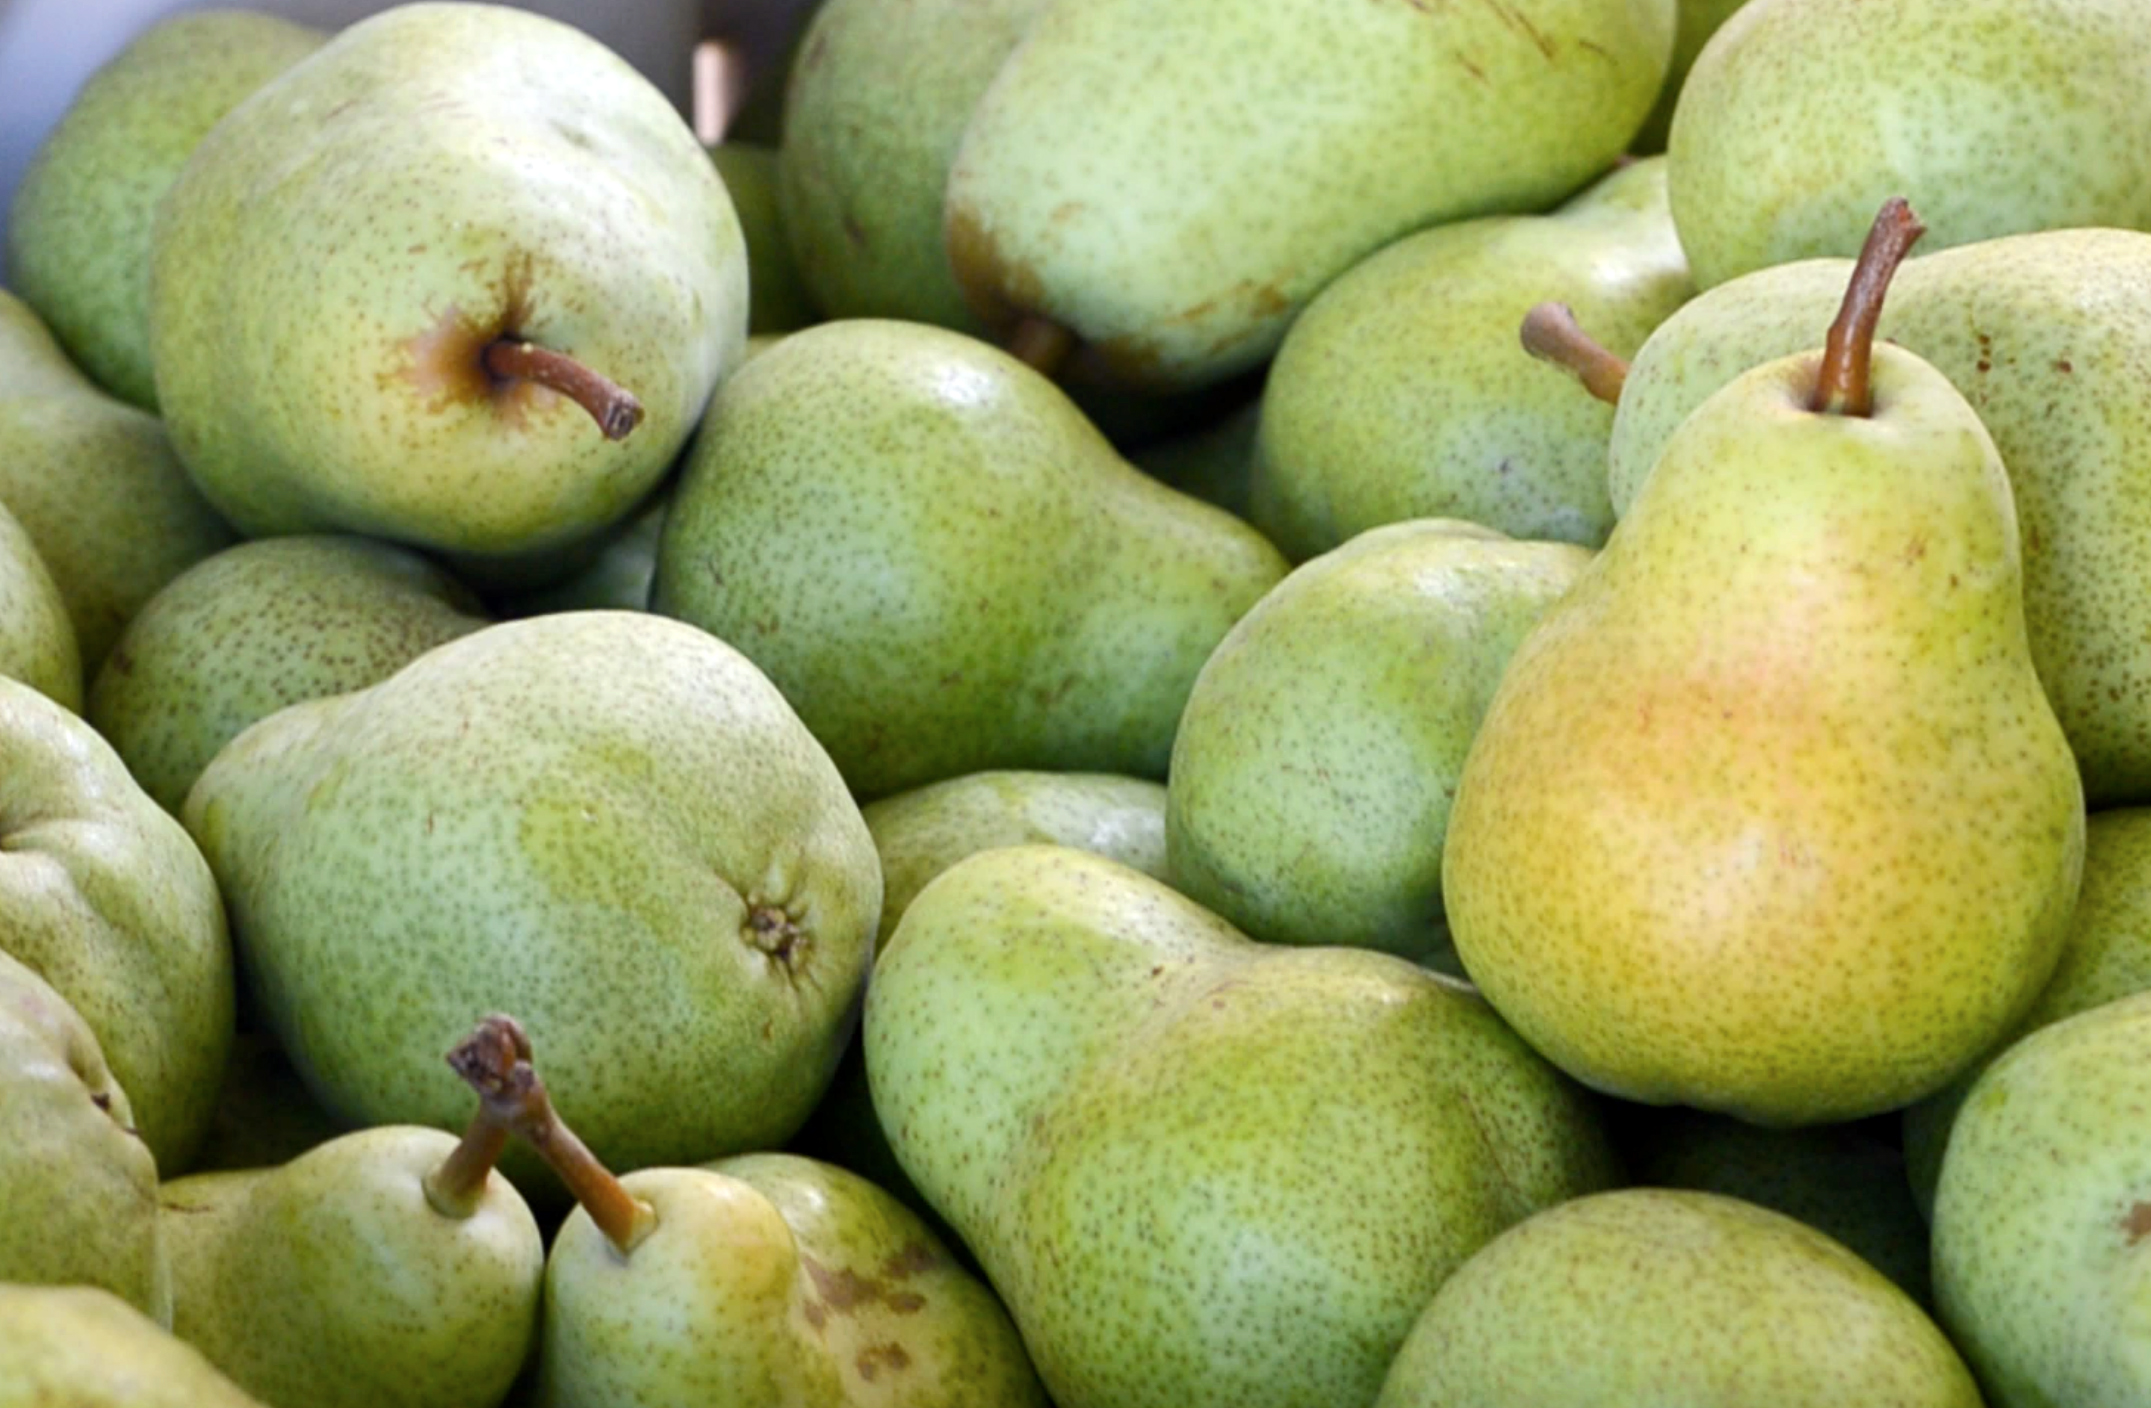 California Pear Advisory Board Wins Wide Support Among Pear Producers